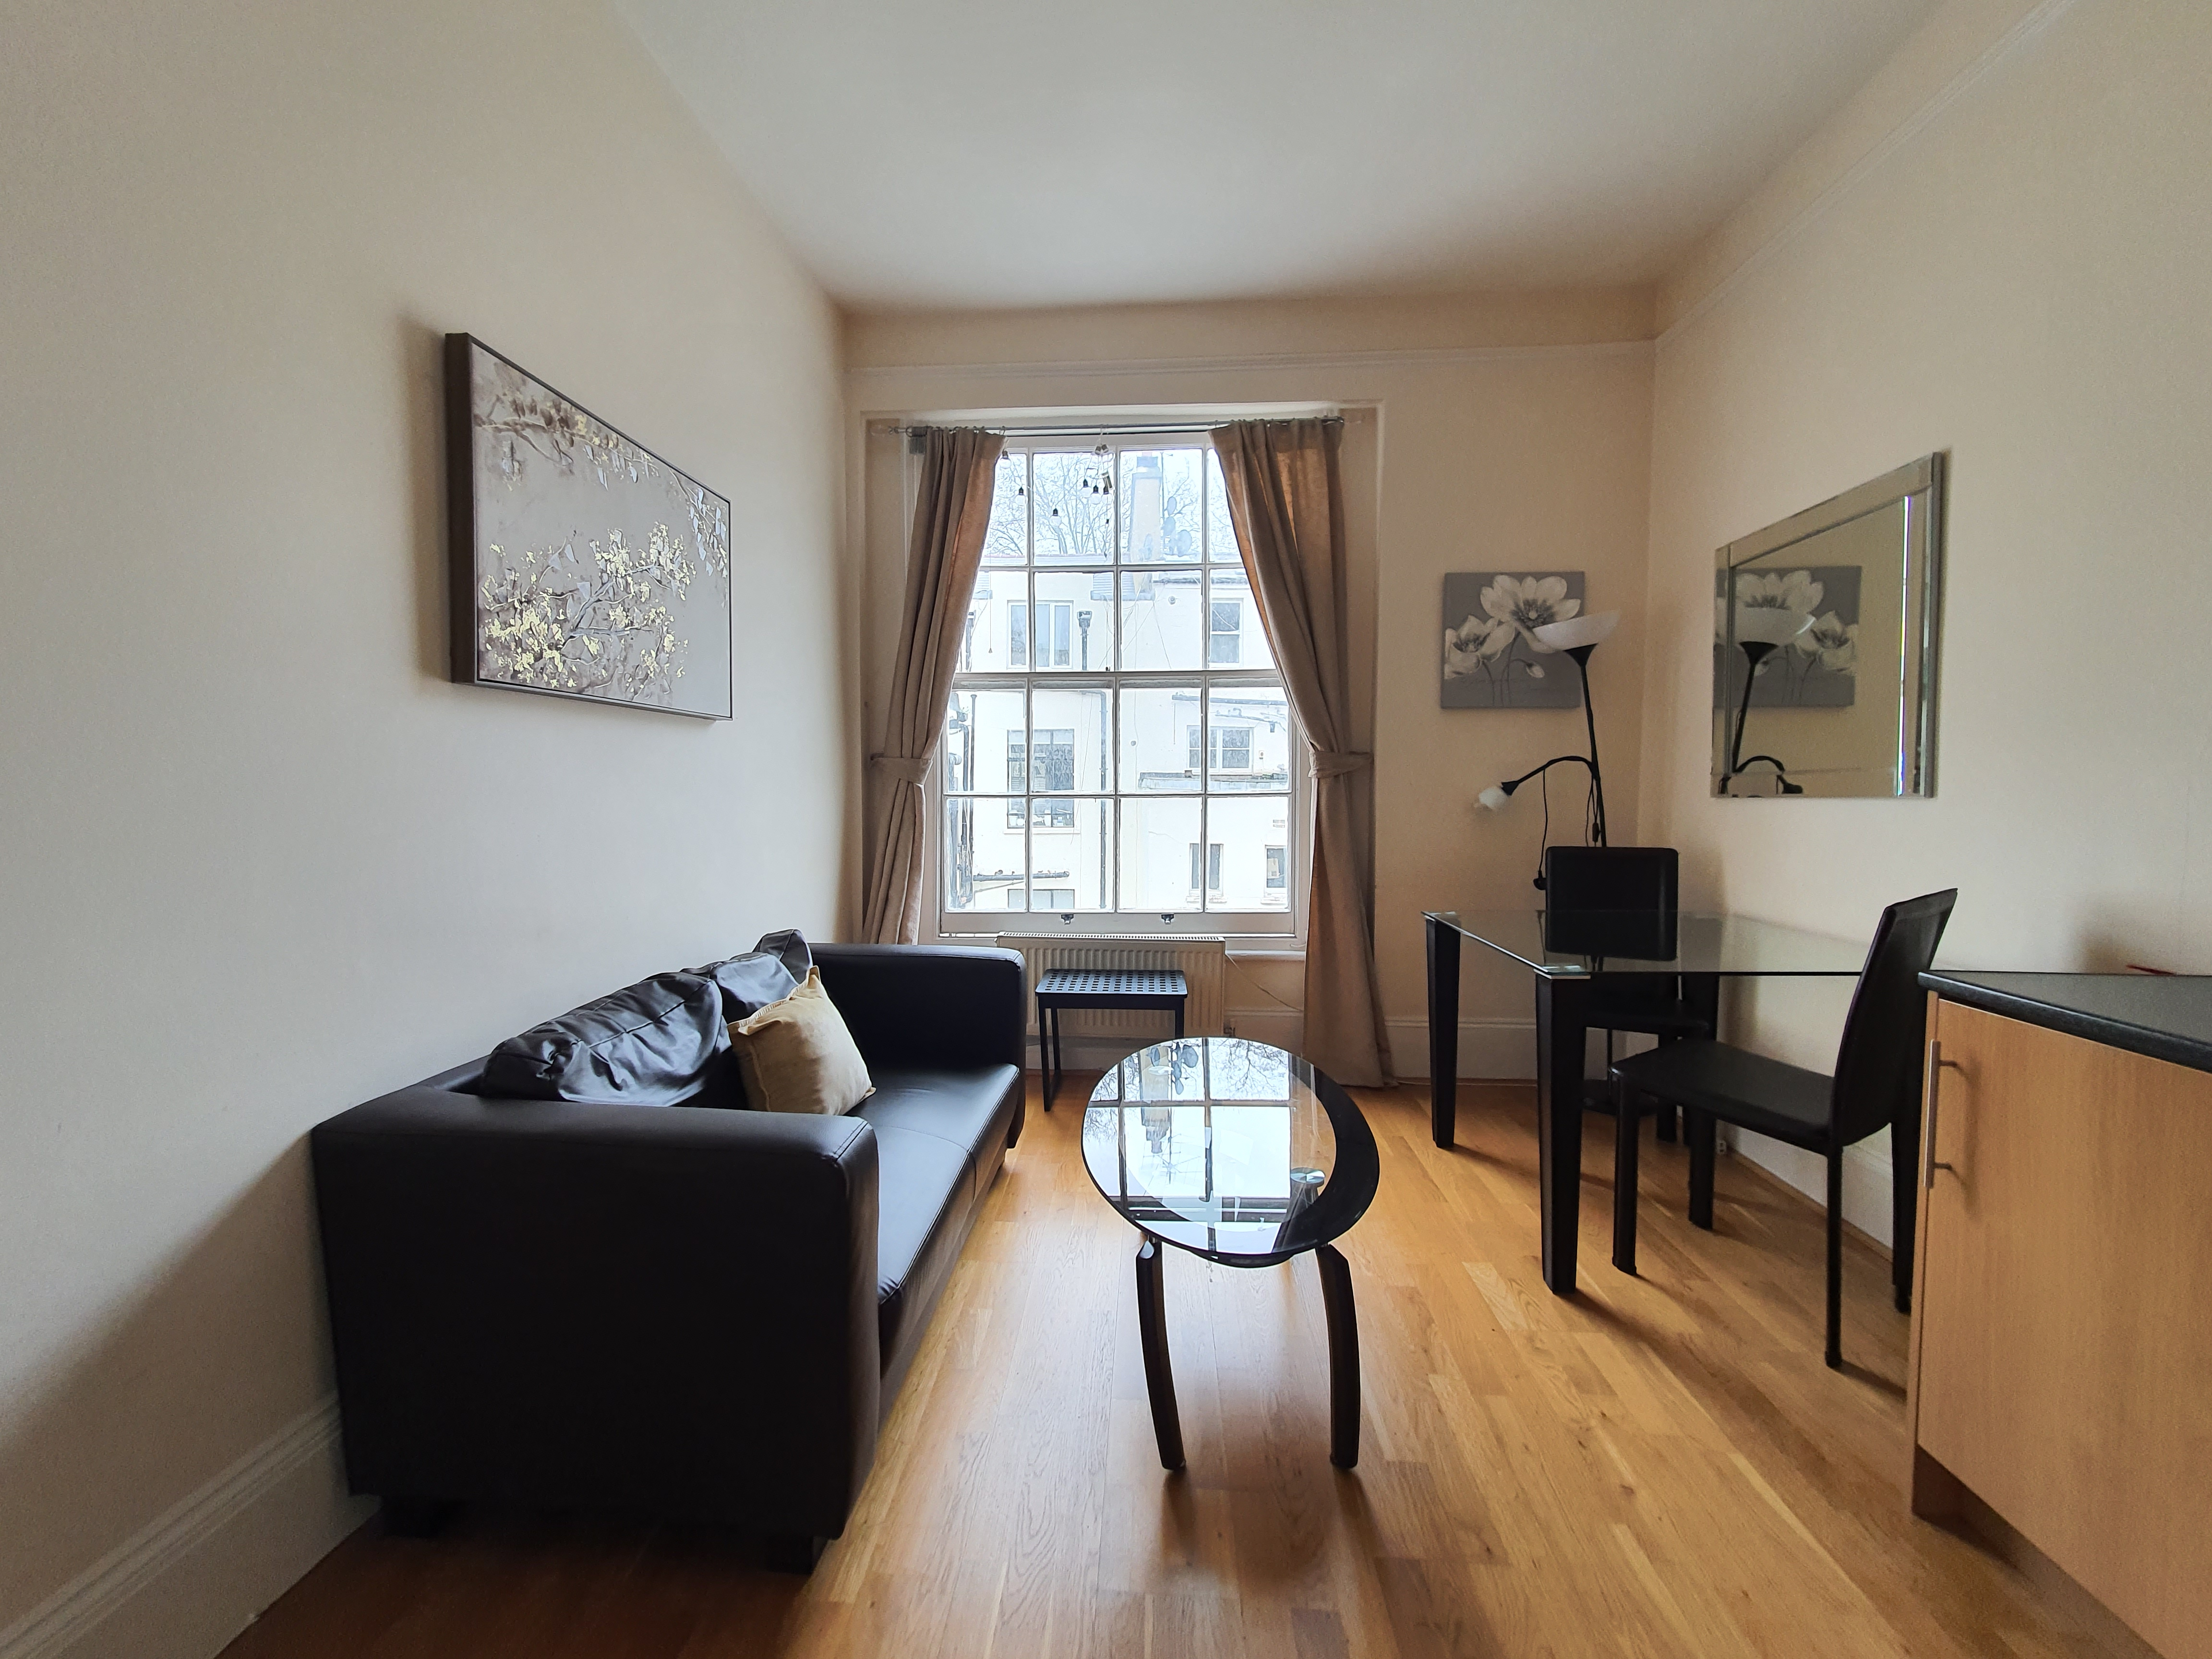 1 bed Flat for rent in London. From Kravens Ltd